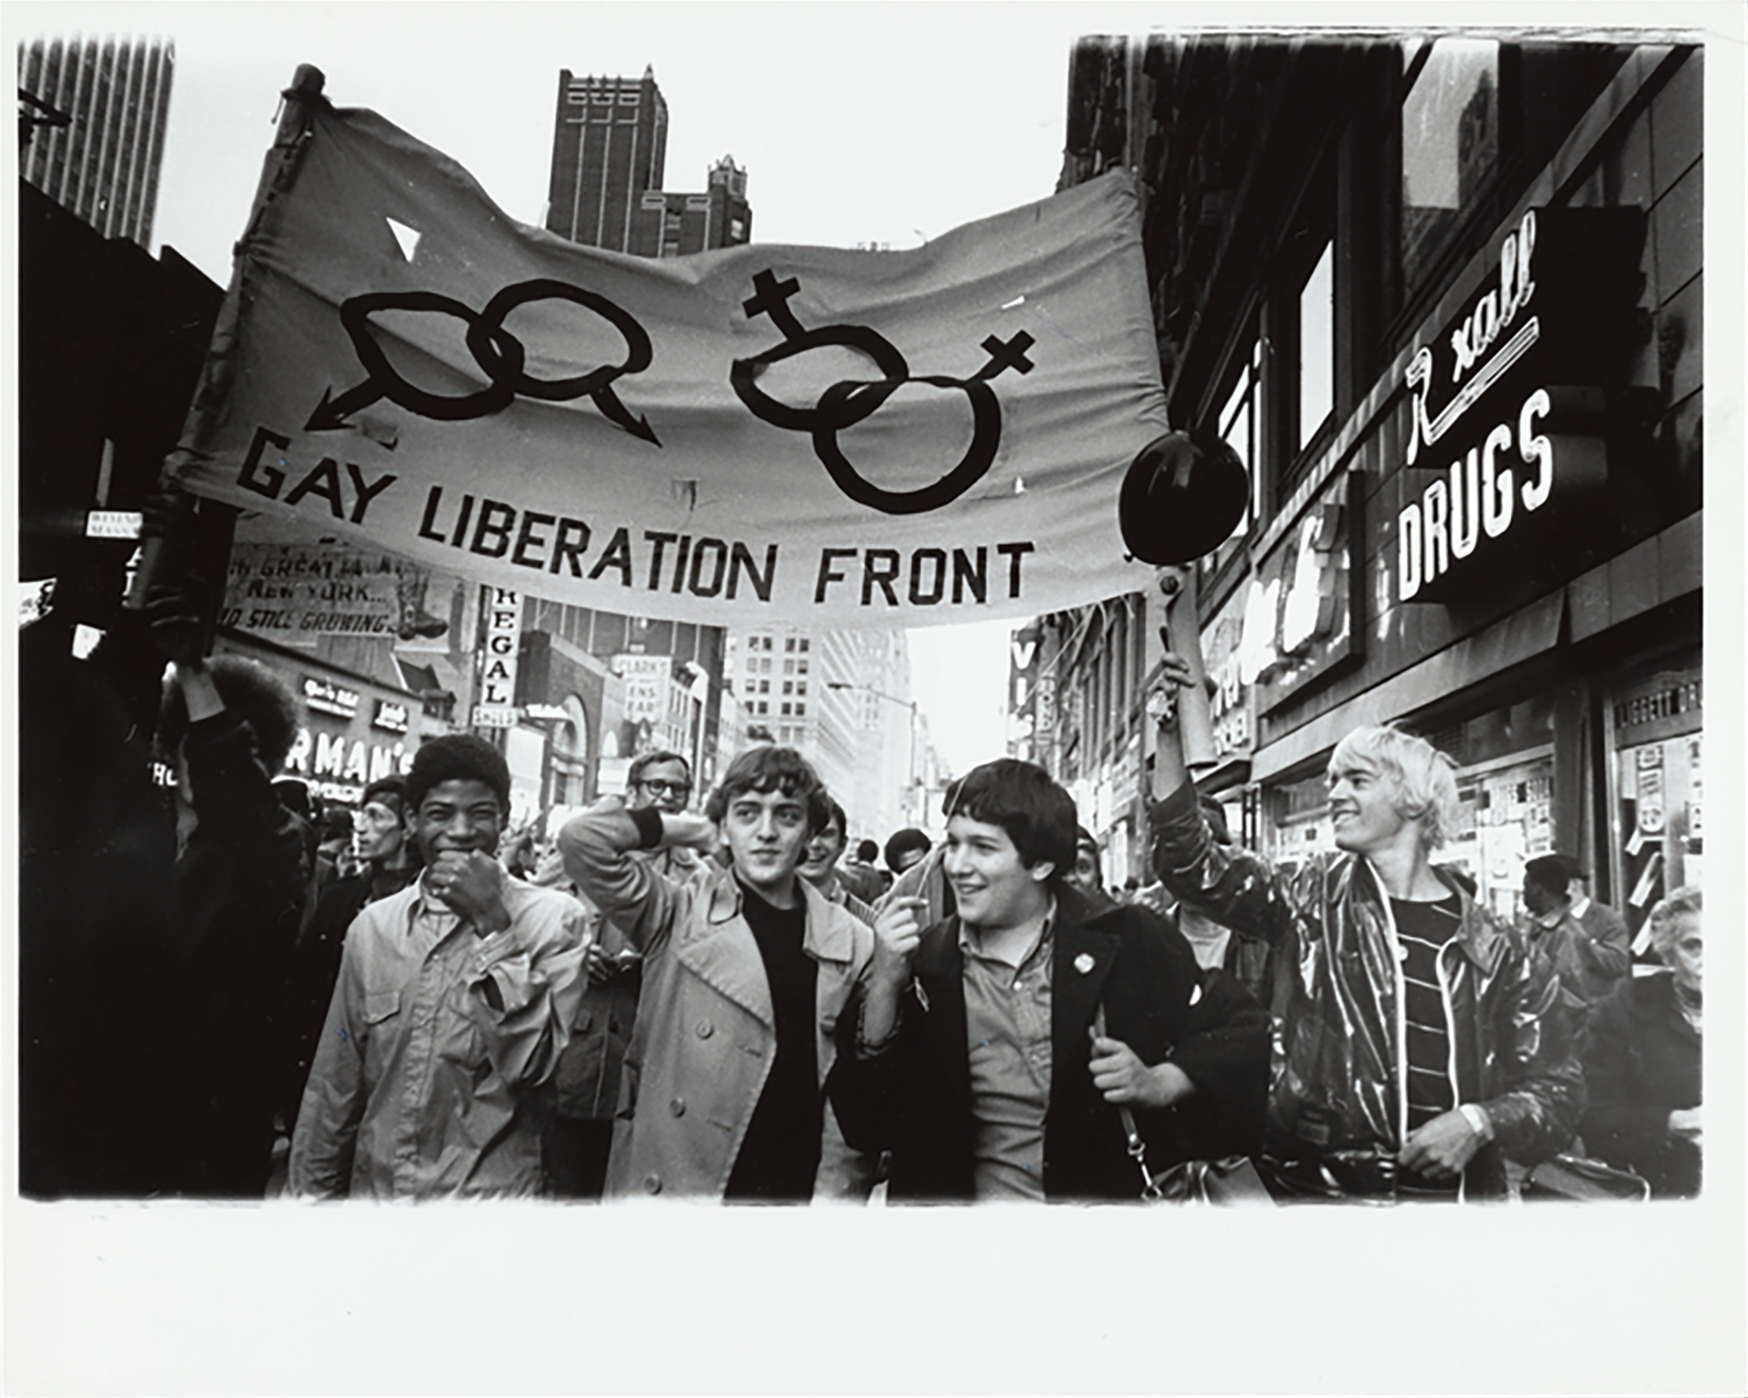 """A group of marchers holding a sign that reads """"GAY LIBERATION FRONT"""" and groups of the symbol for male and the symbol for female"""